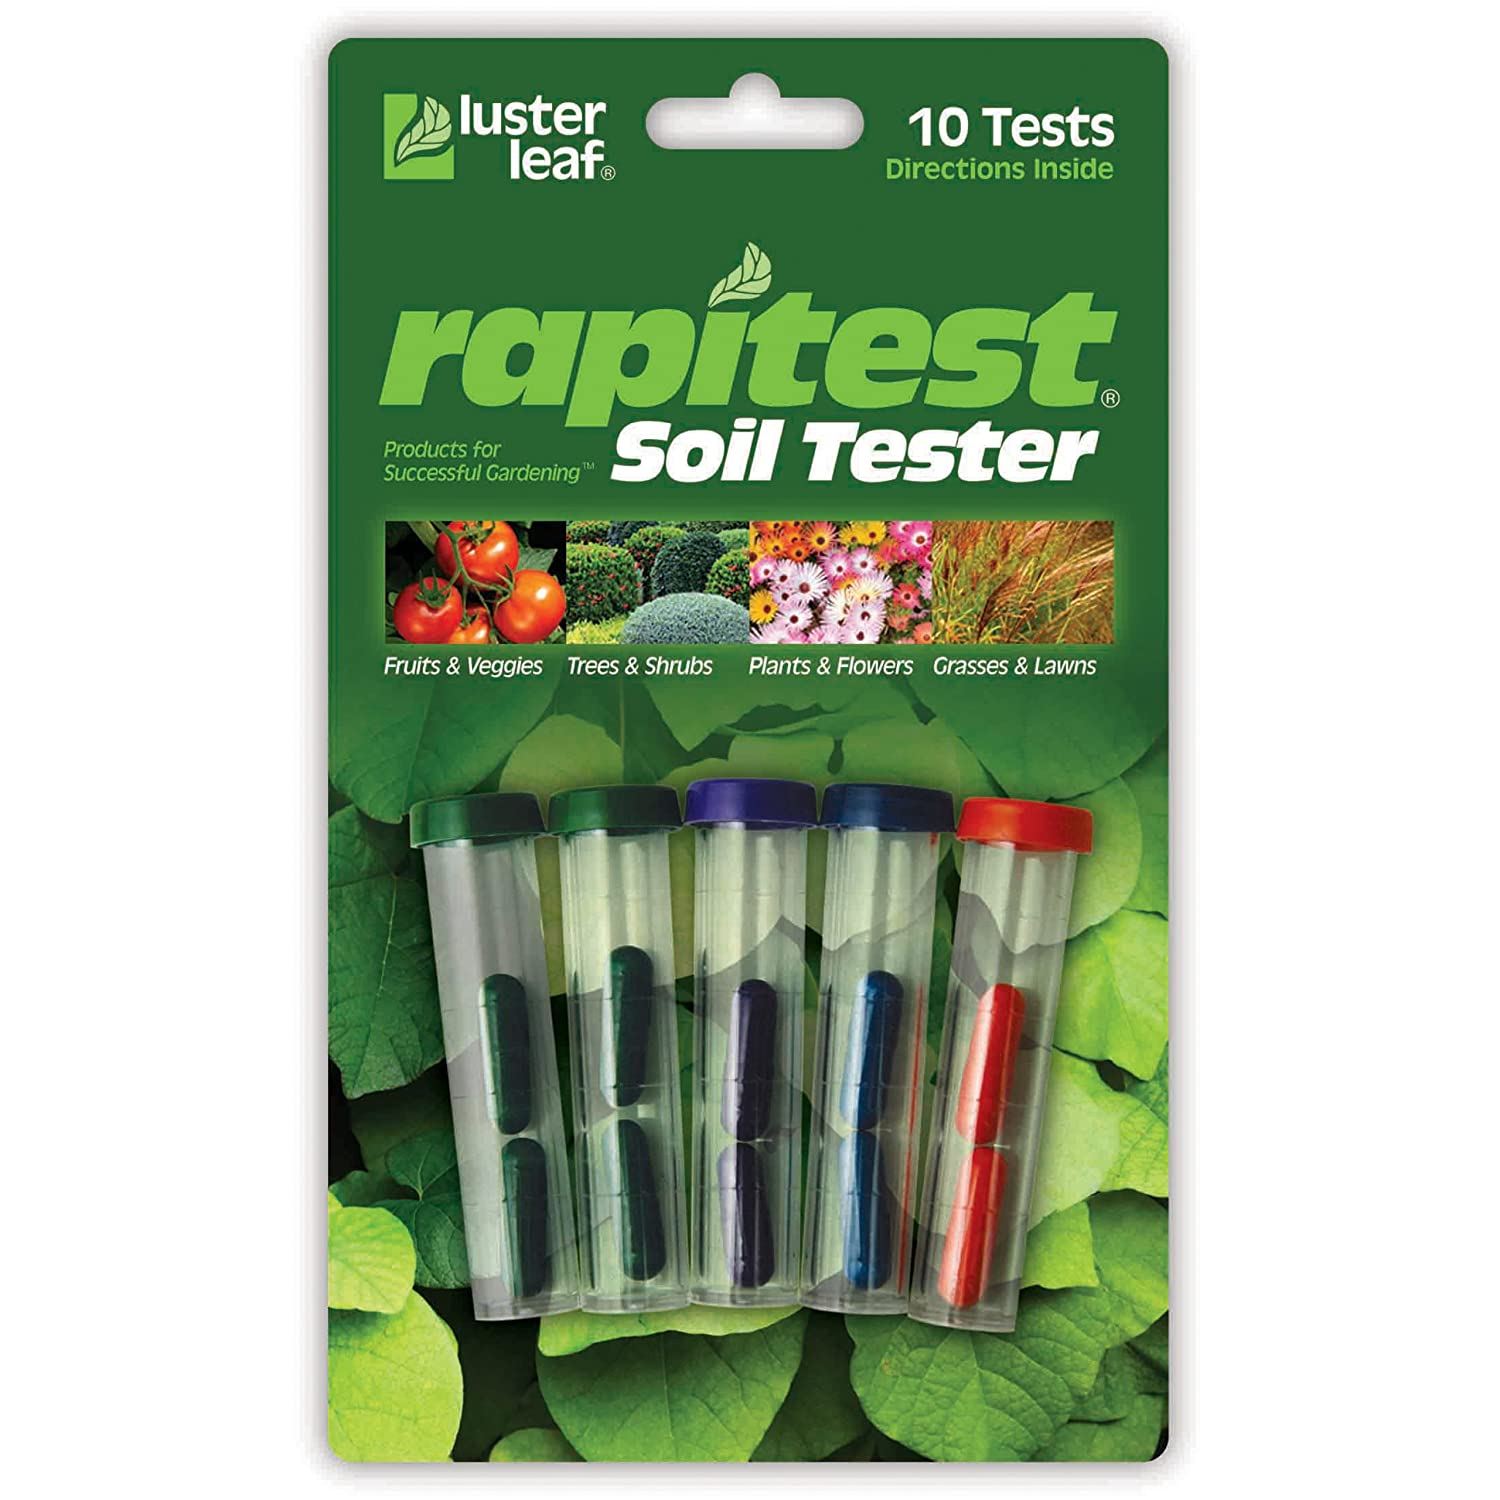 The Luster Leaf Rapitest Soil Tester Is Inexpensive And Easy To Use. If You  Have A Small Garden And Are Primarily Testing For PH Level, And For  Nitrogen, ...